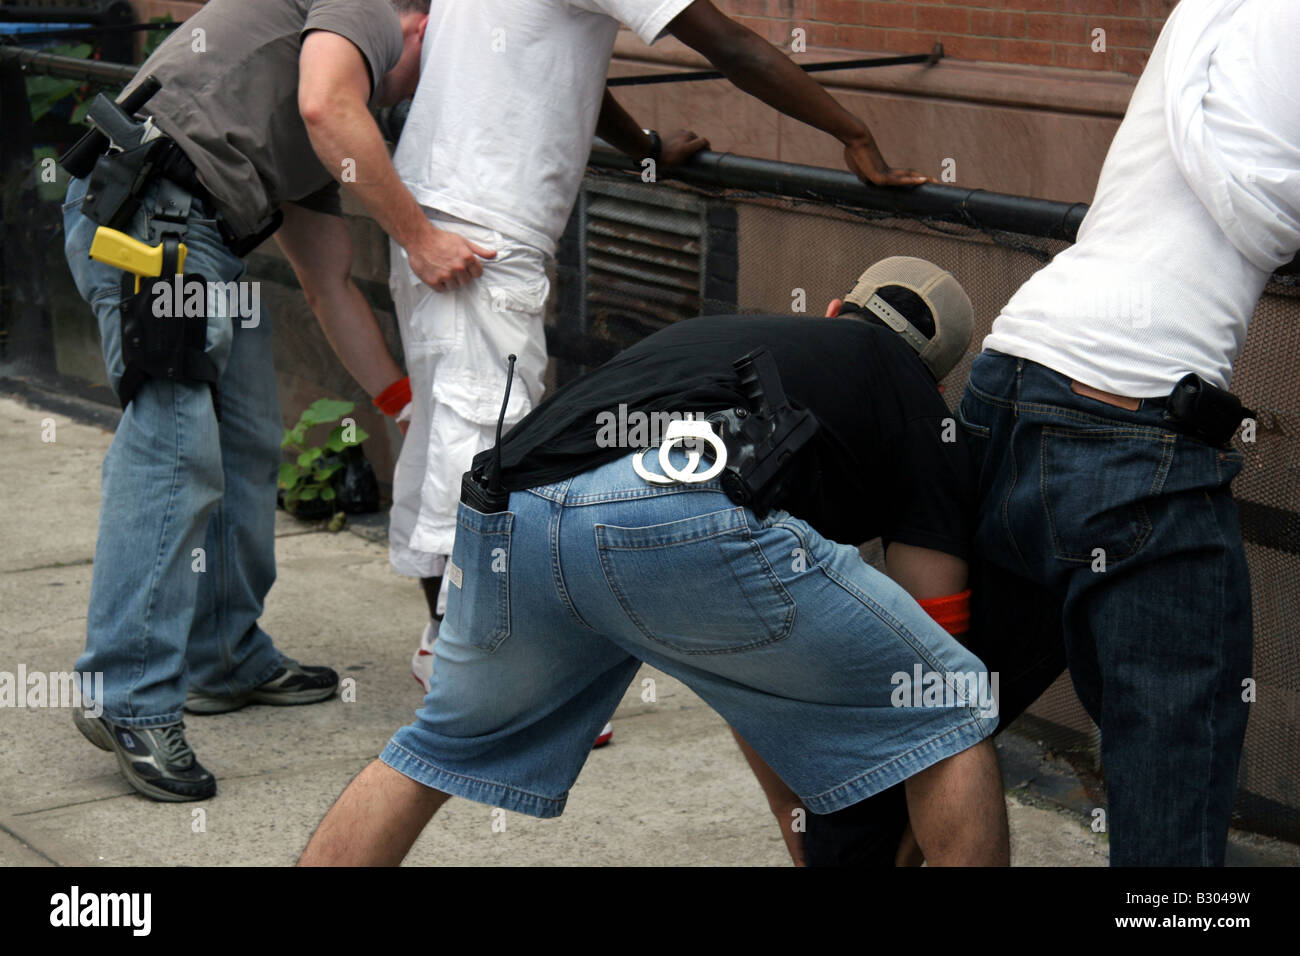 Plain clothes detectives searching suspects in Harlem New York City - Stock Image